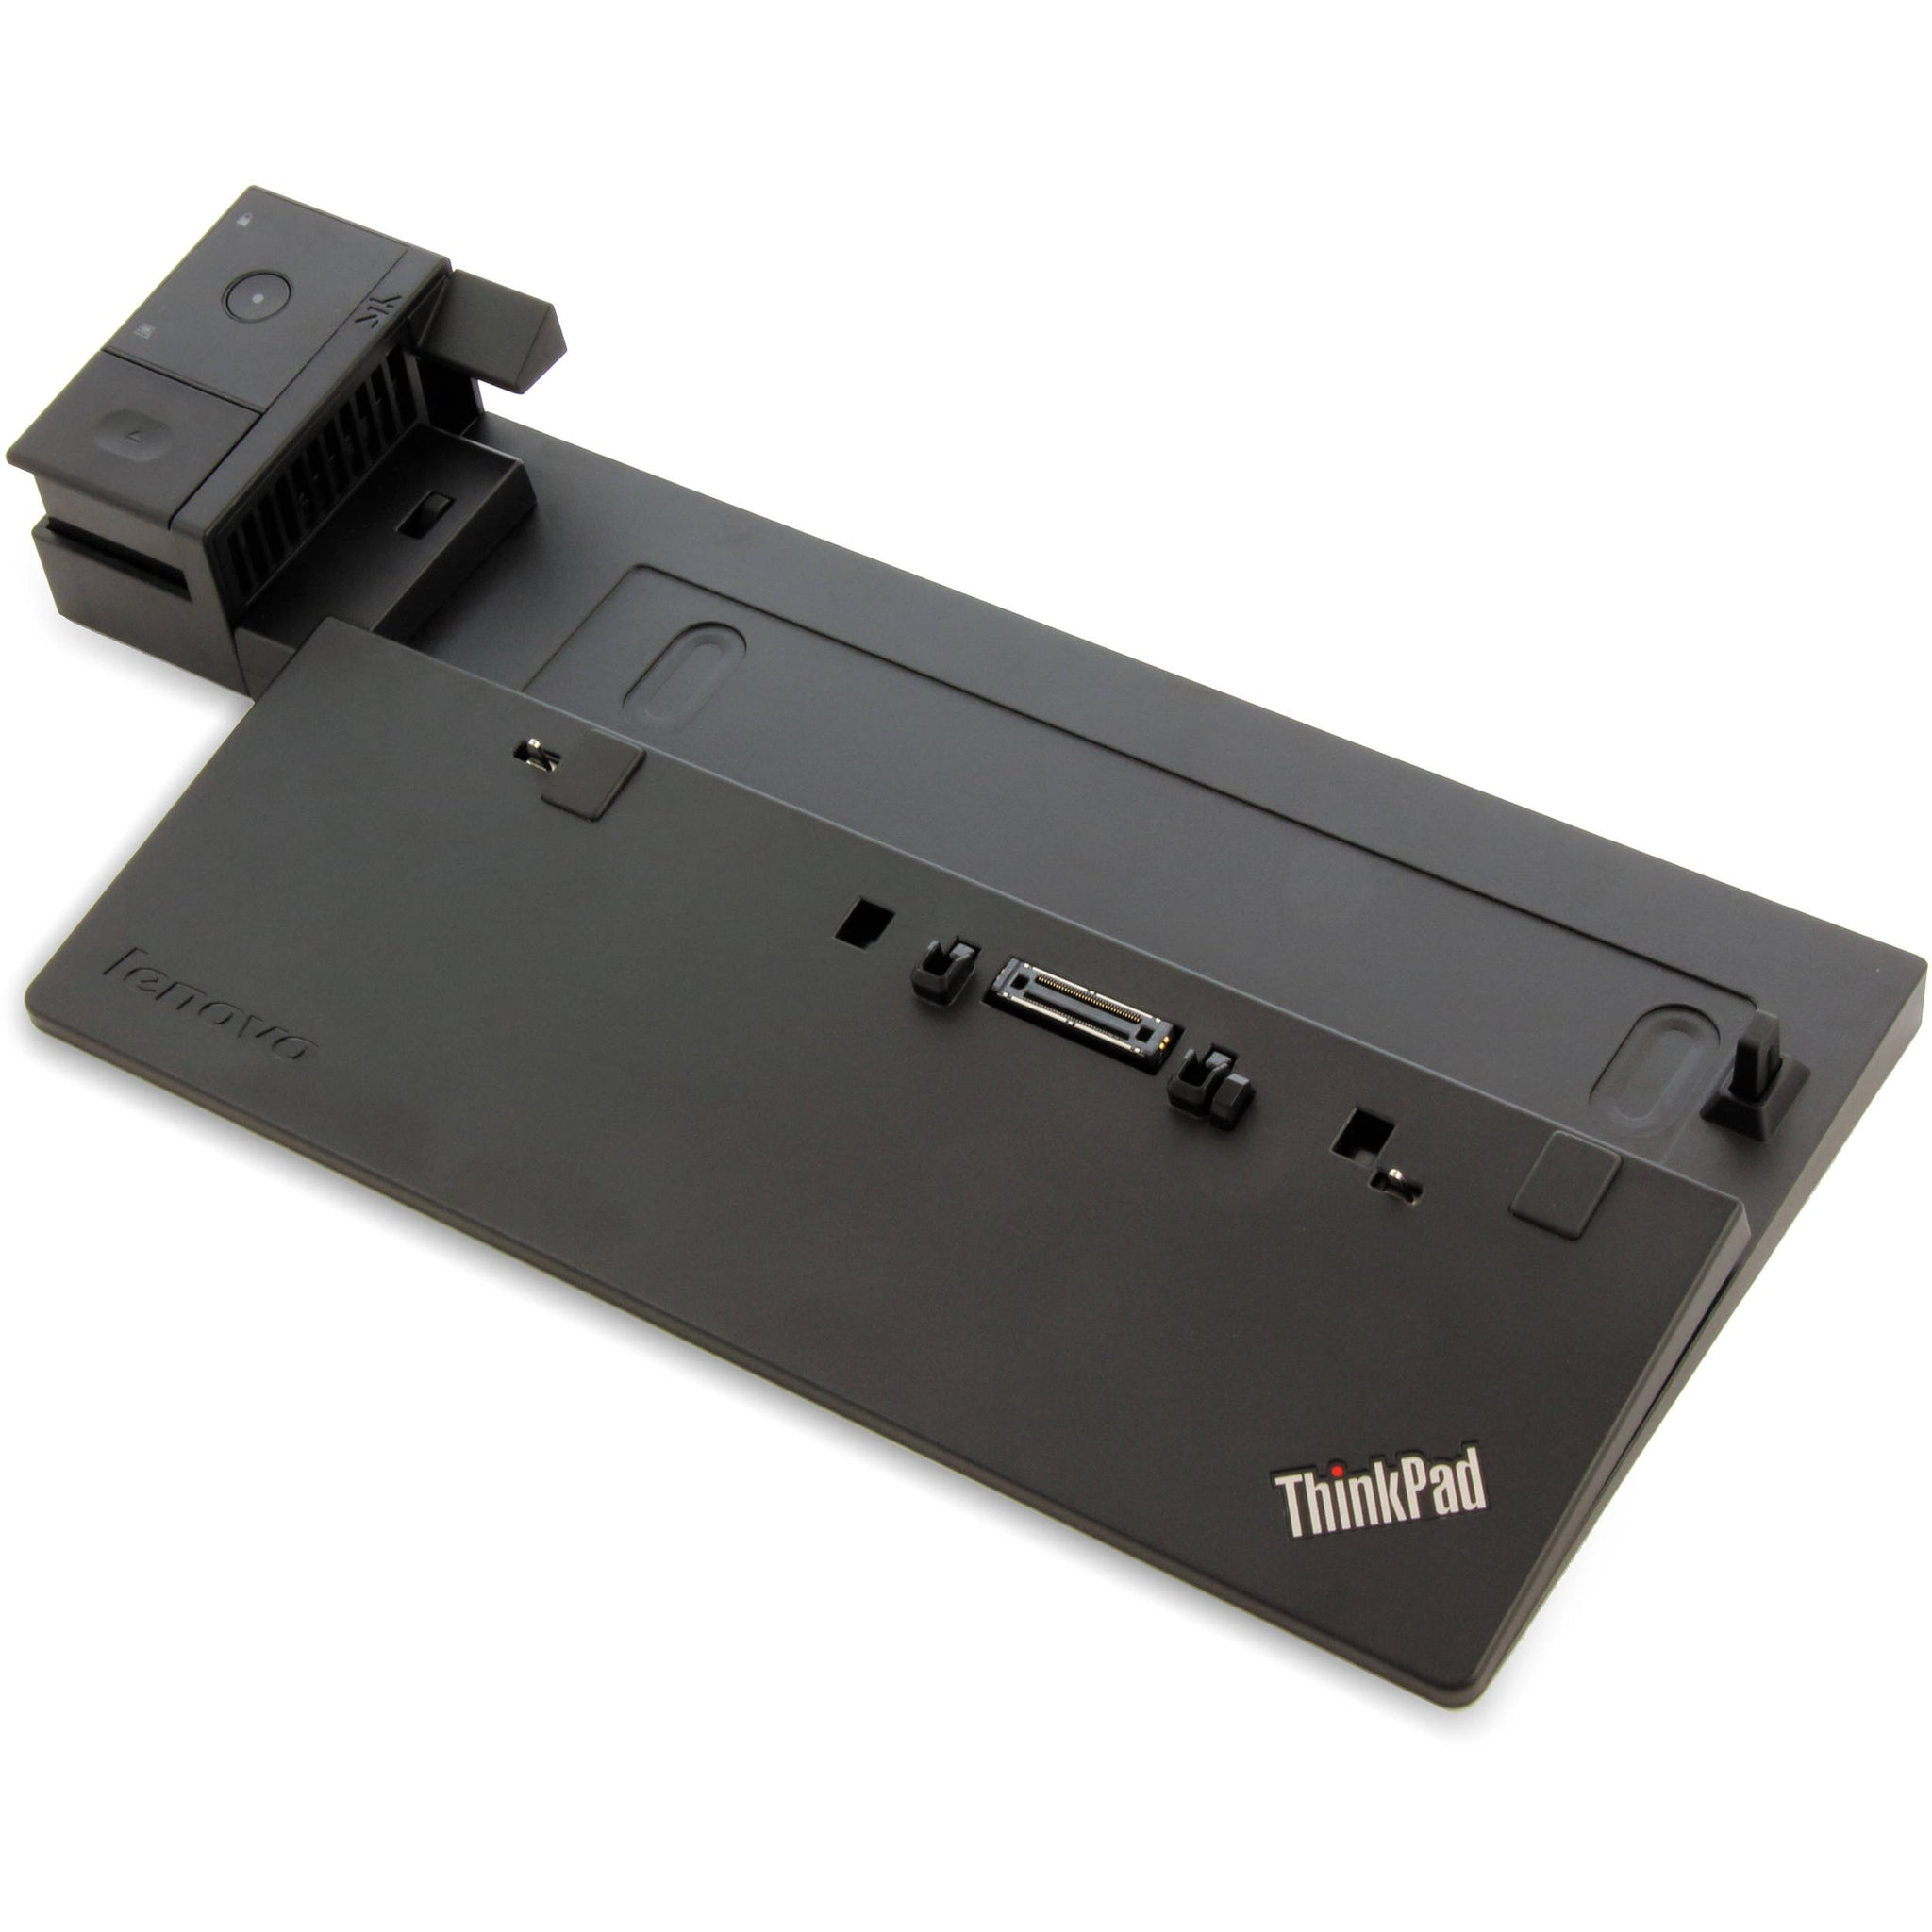 Lenovo Thinkpad  Ultra Dock, Refurbished